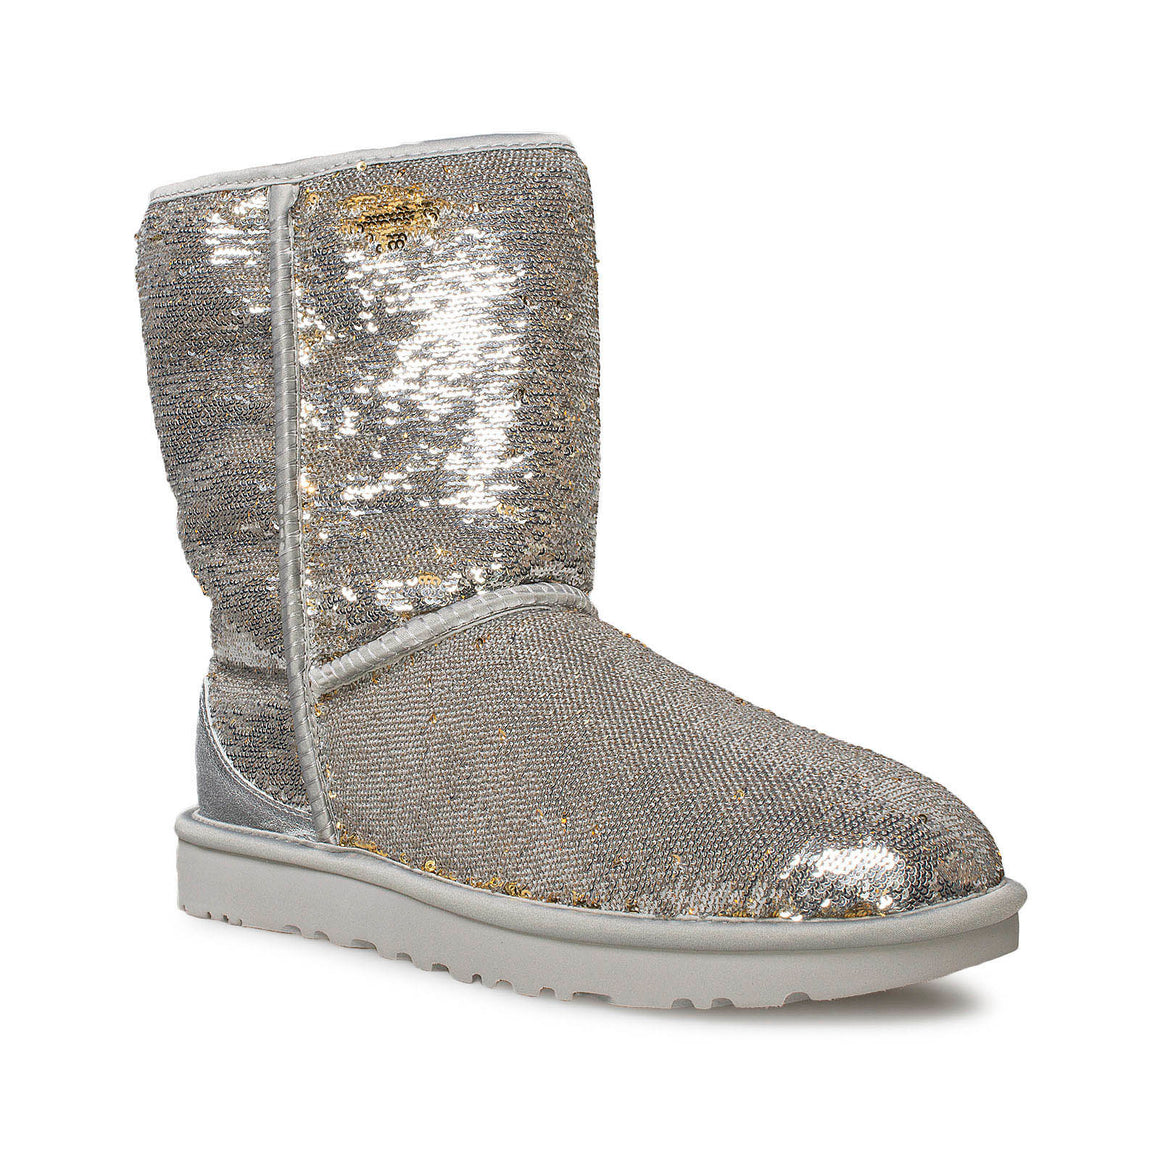 UGG Classic Short Cosmos Sequin Silver Gold Boots - Women's